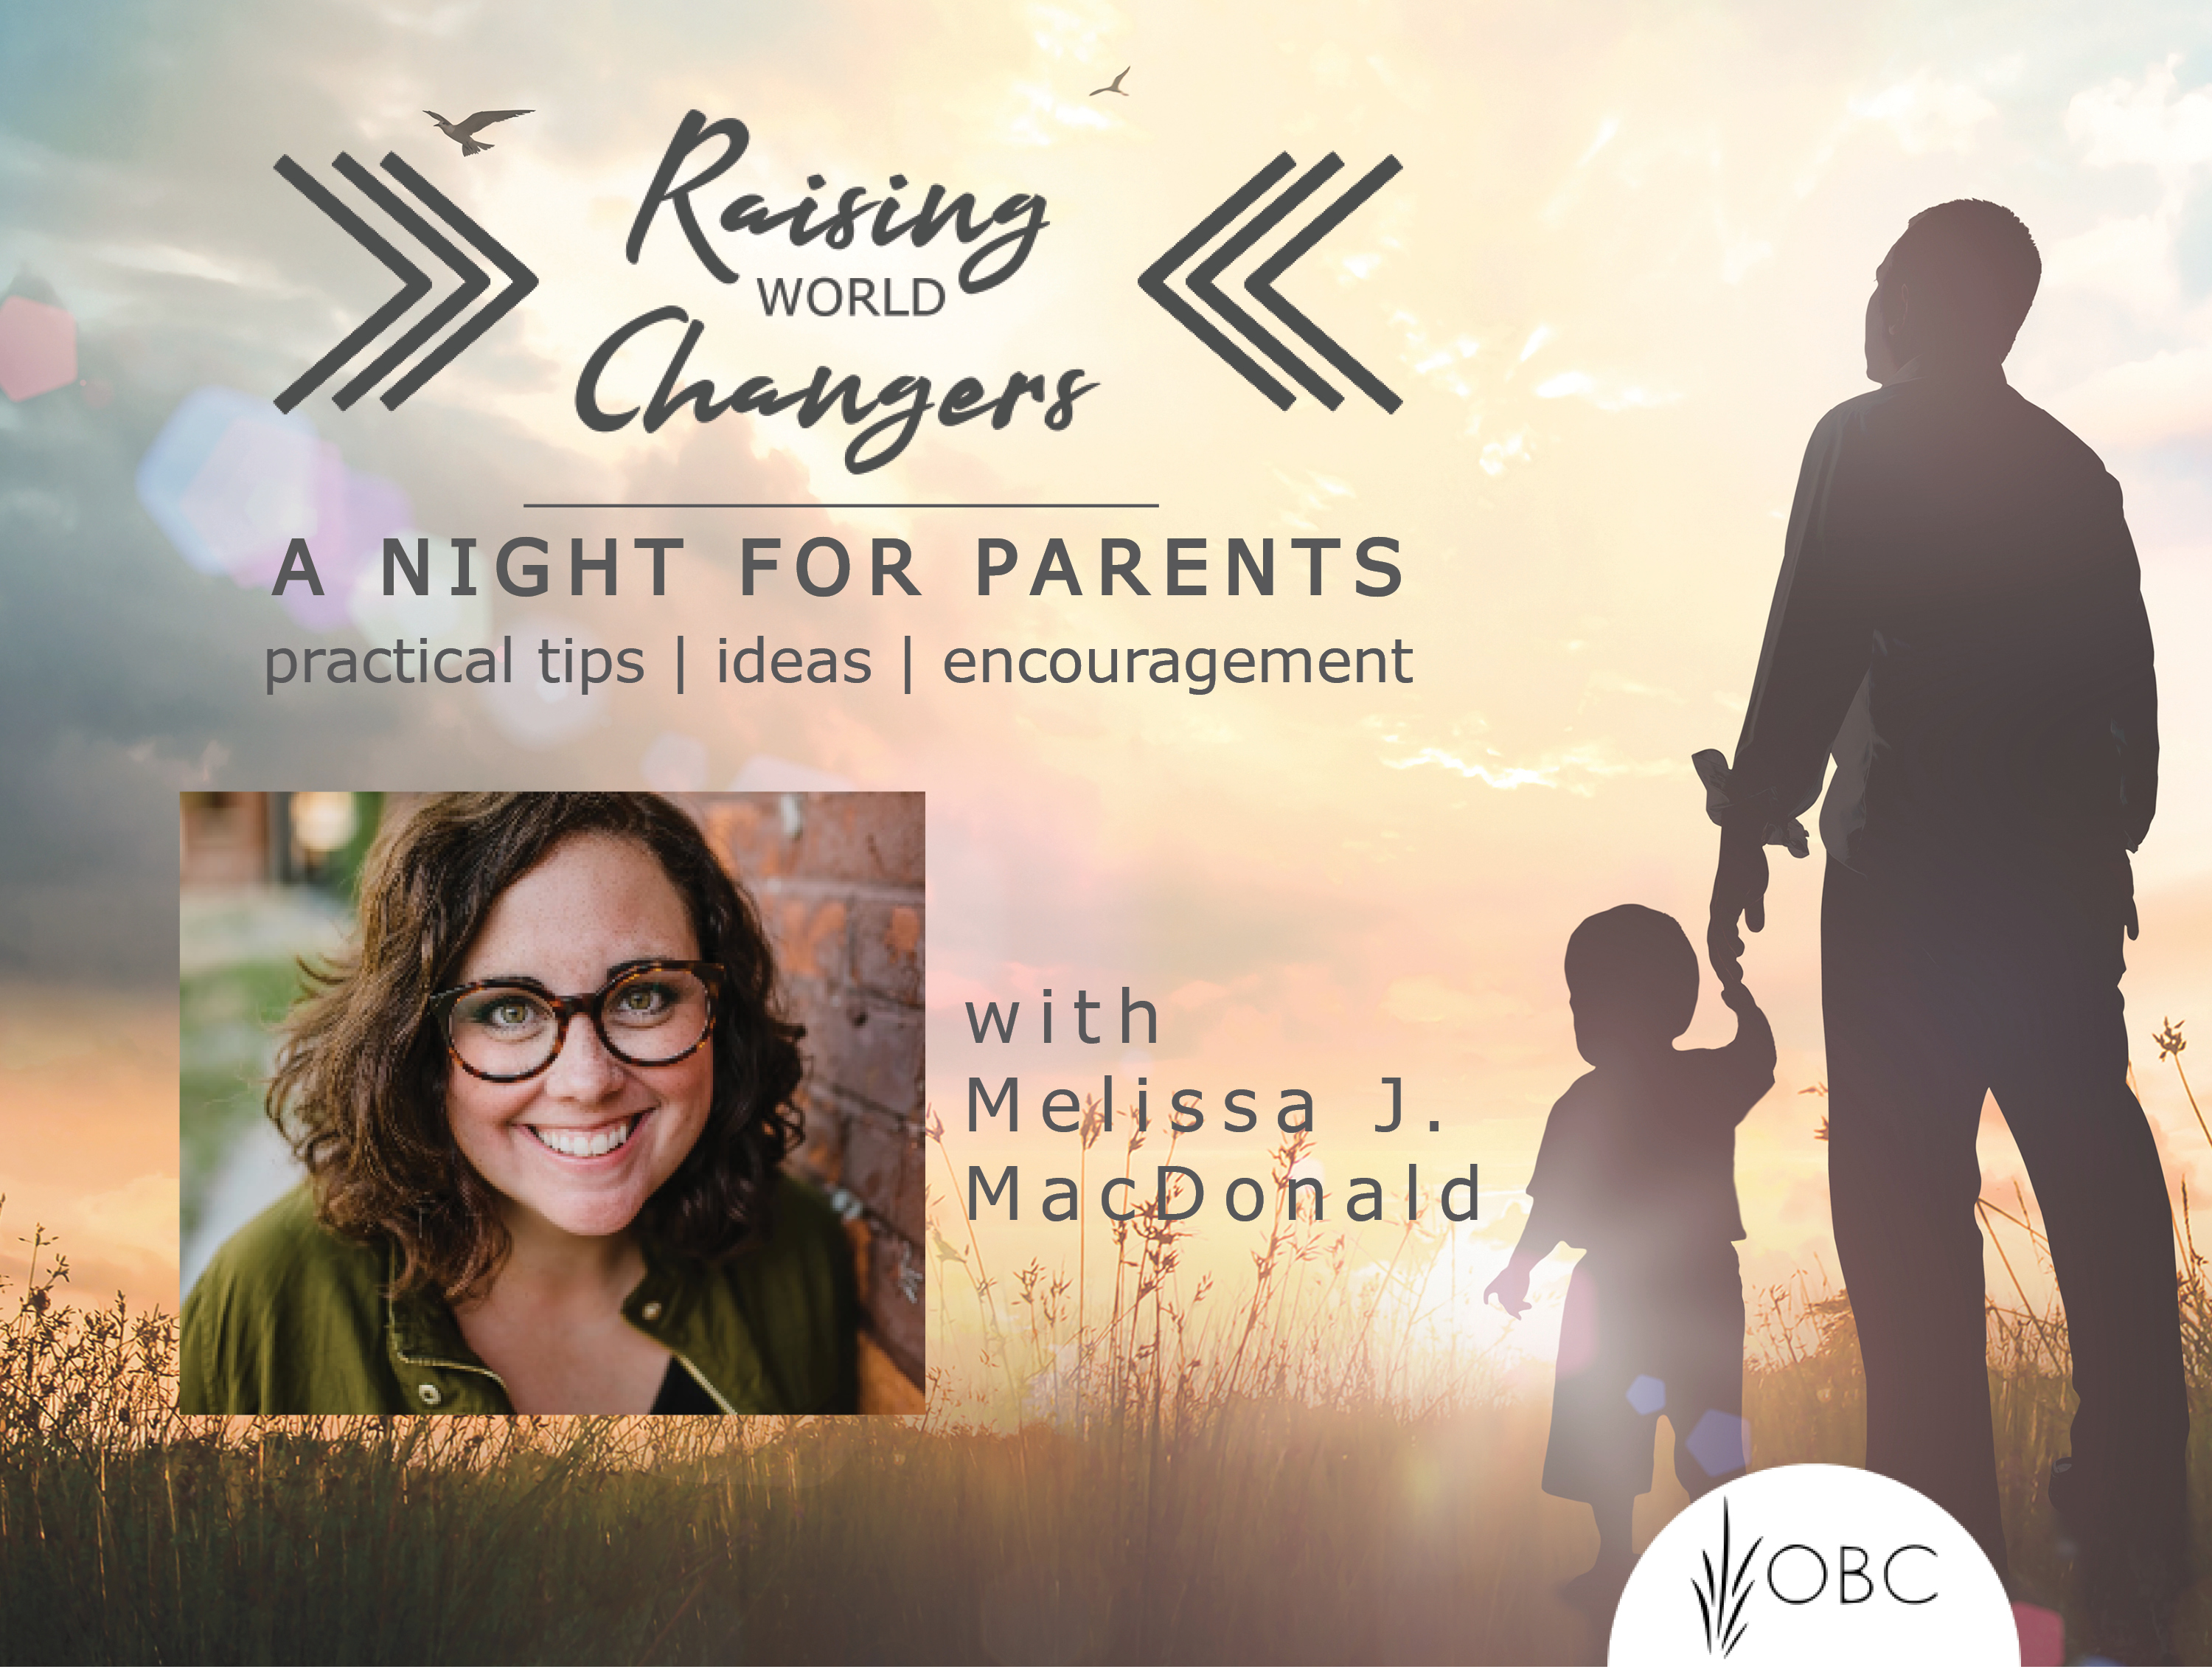 World changer congregation promo